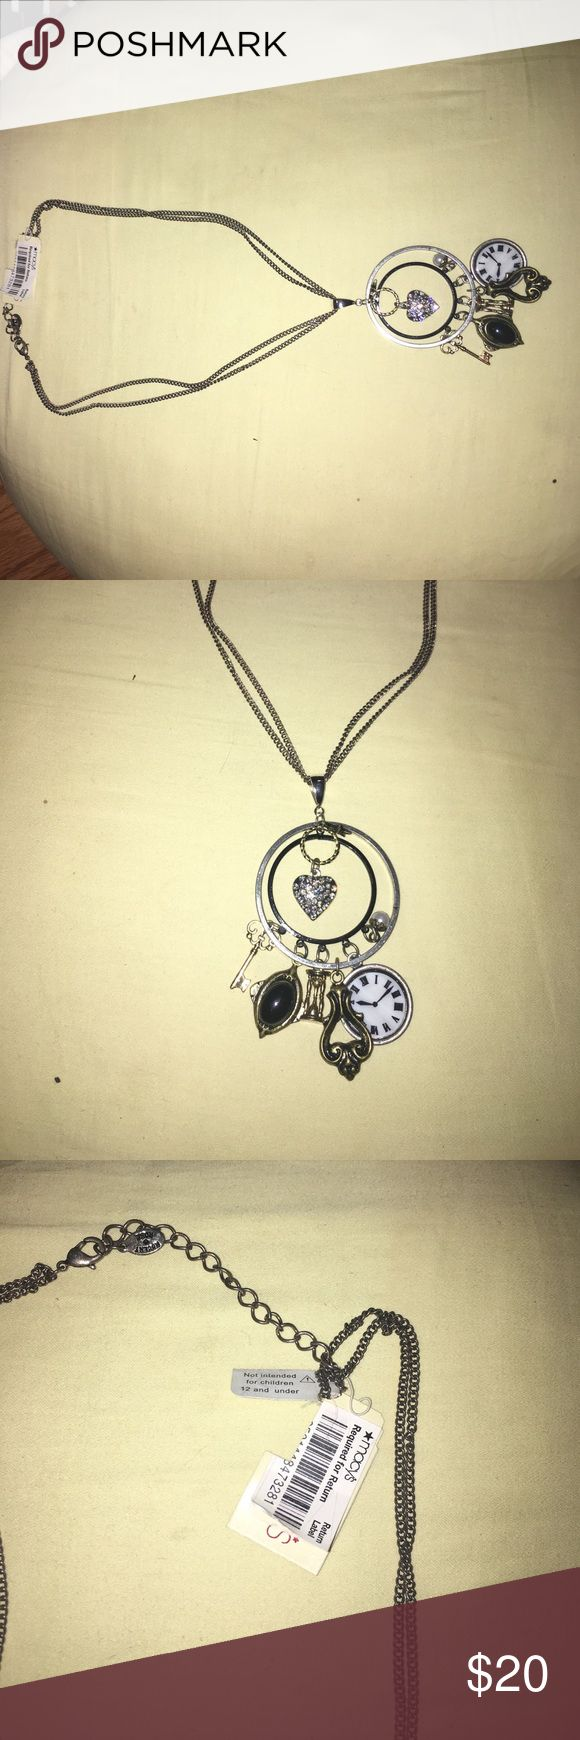 Alice in wonderland style necklace Brand new charm necklace designed in part by ideas of Alice and wonderland! Heart star key hour glass pearl and clock pendants! Comes with brand new bow tie ring! Macy's Jewelry Necklaces